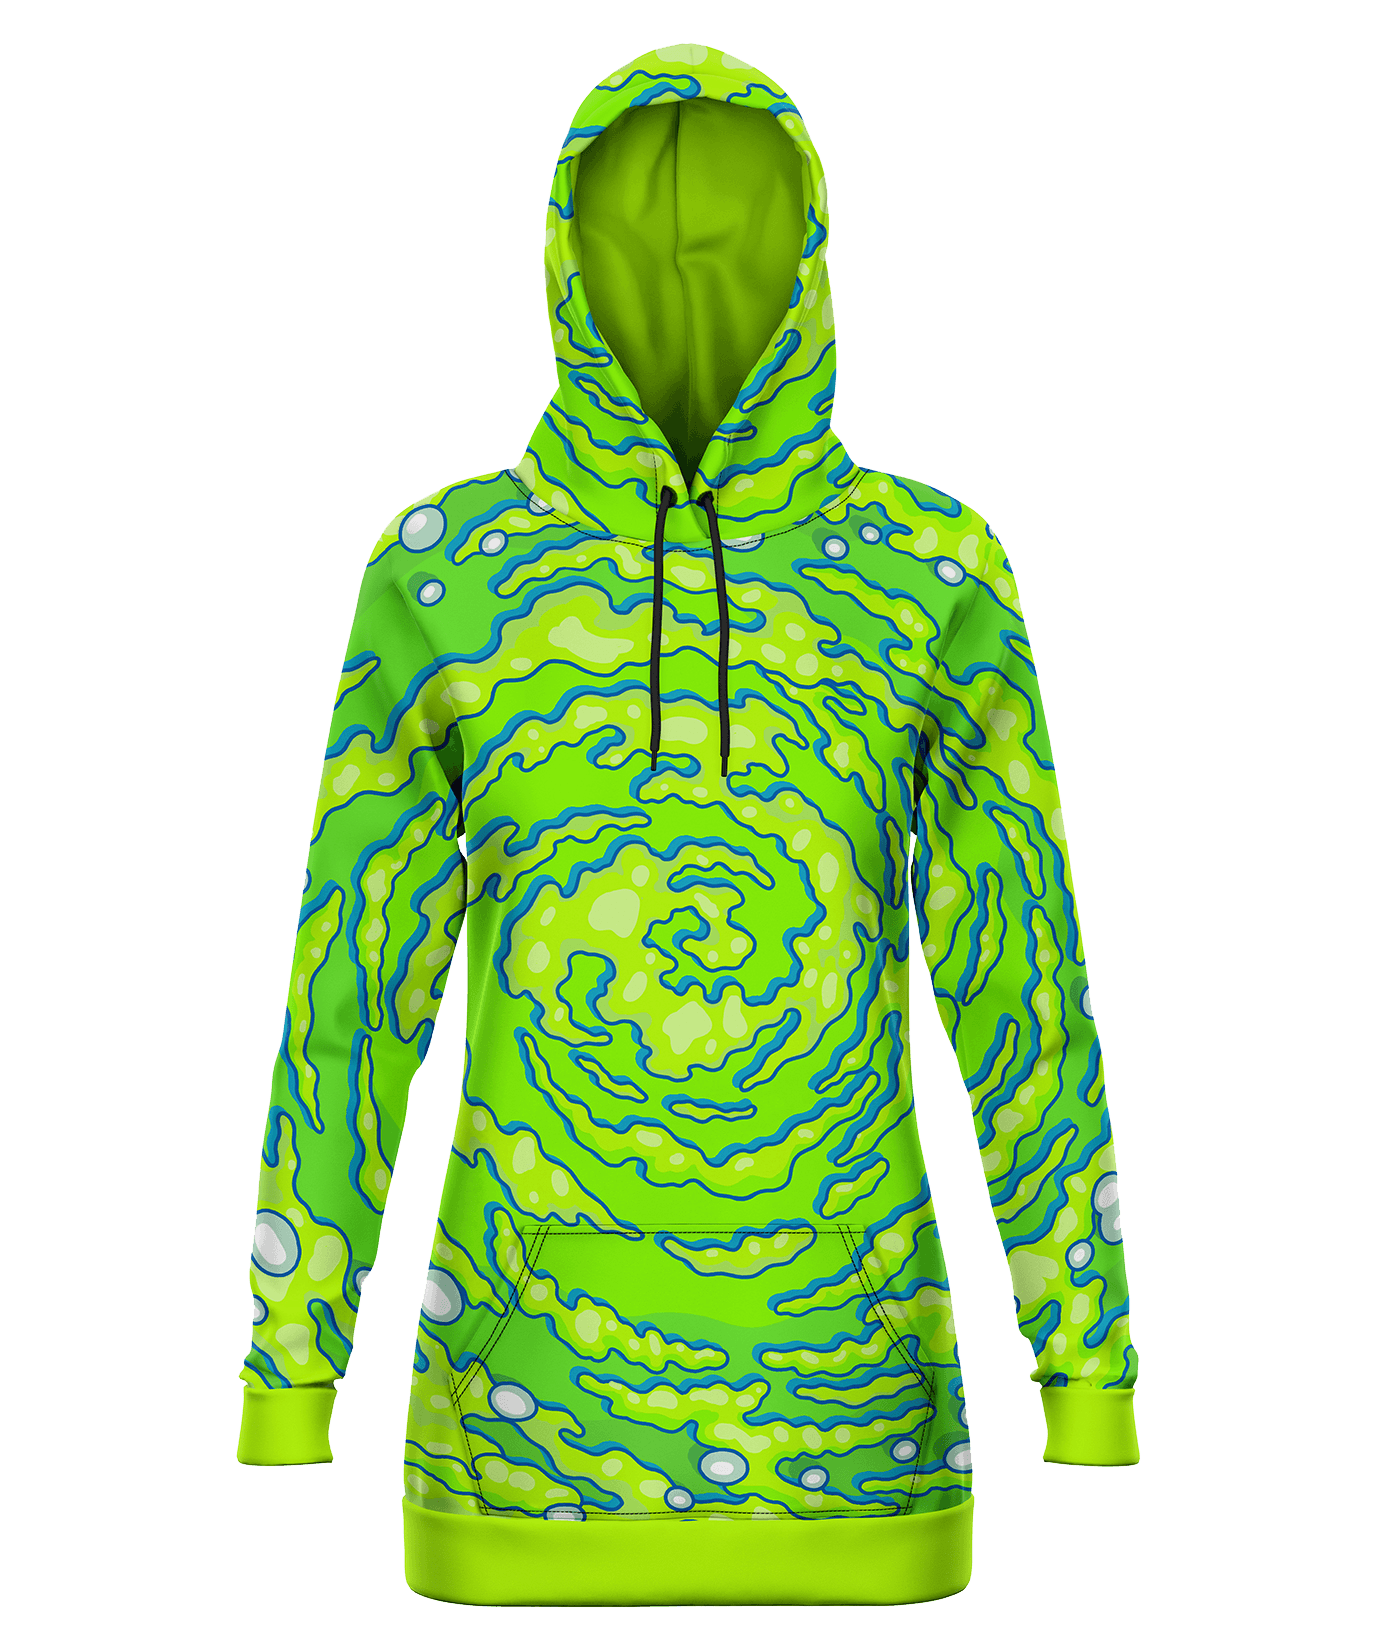 Neon Portal Hooded Dress Hoodie Dress Electro Threads